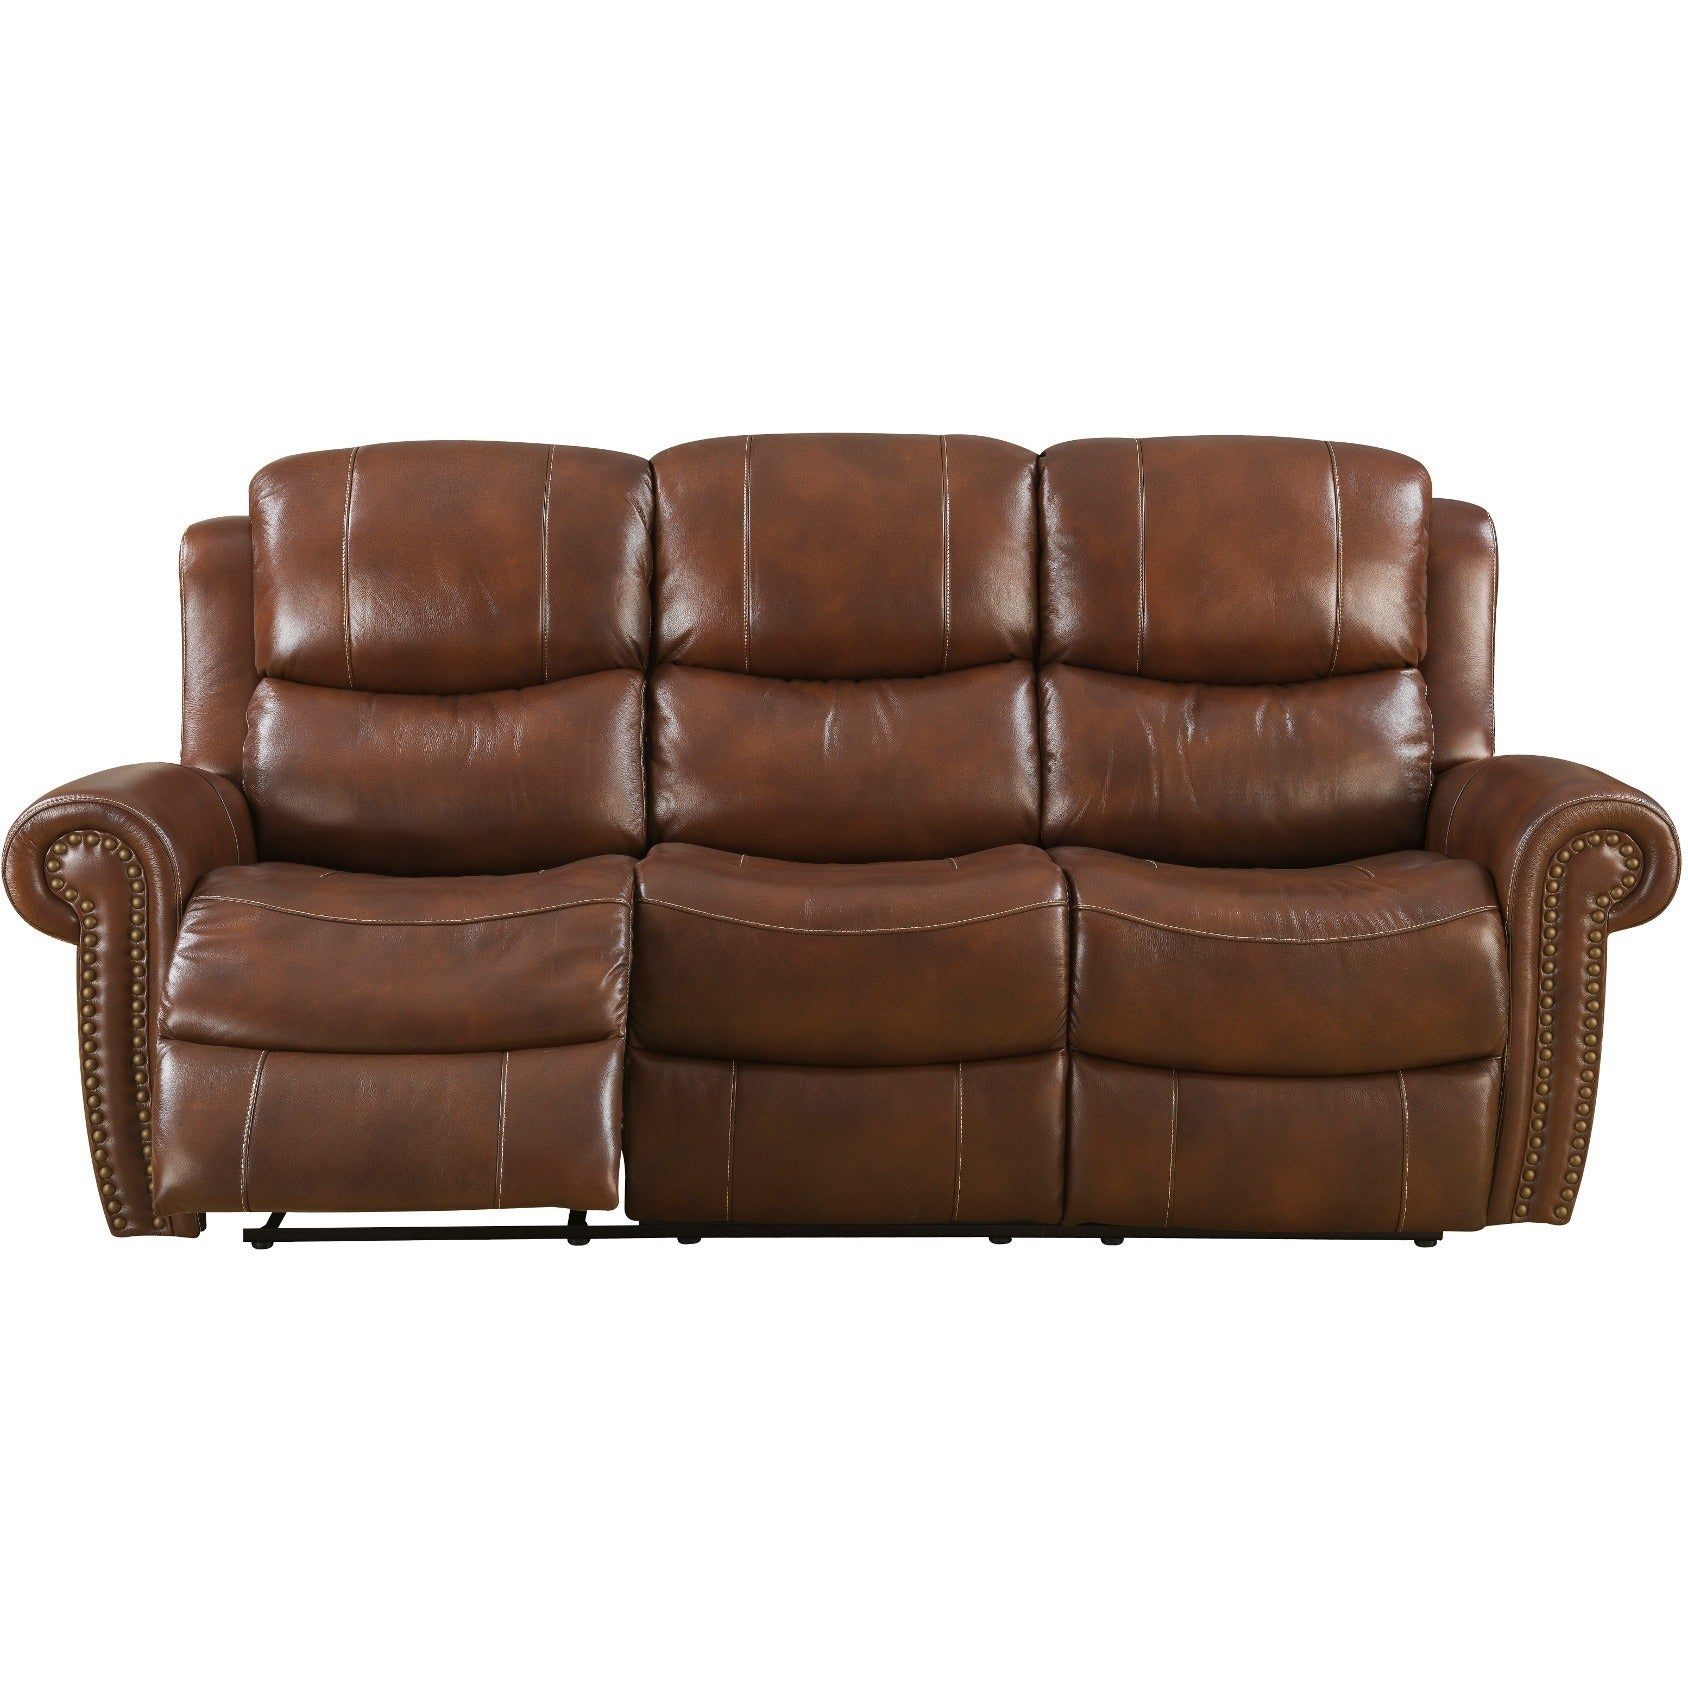 Klaussner Sofa Parts Review Home Decor